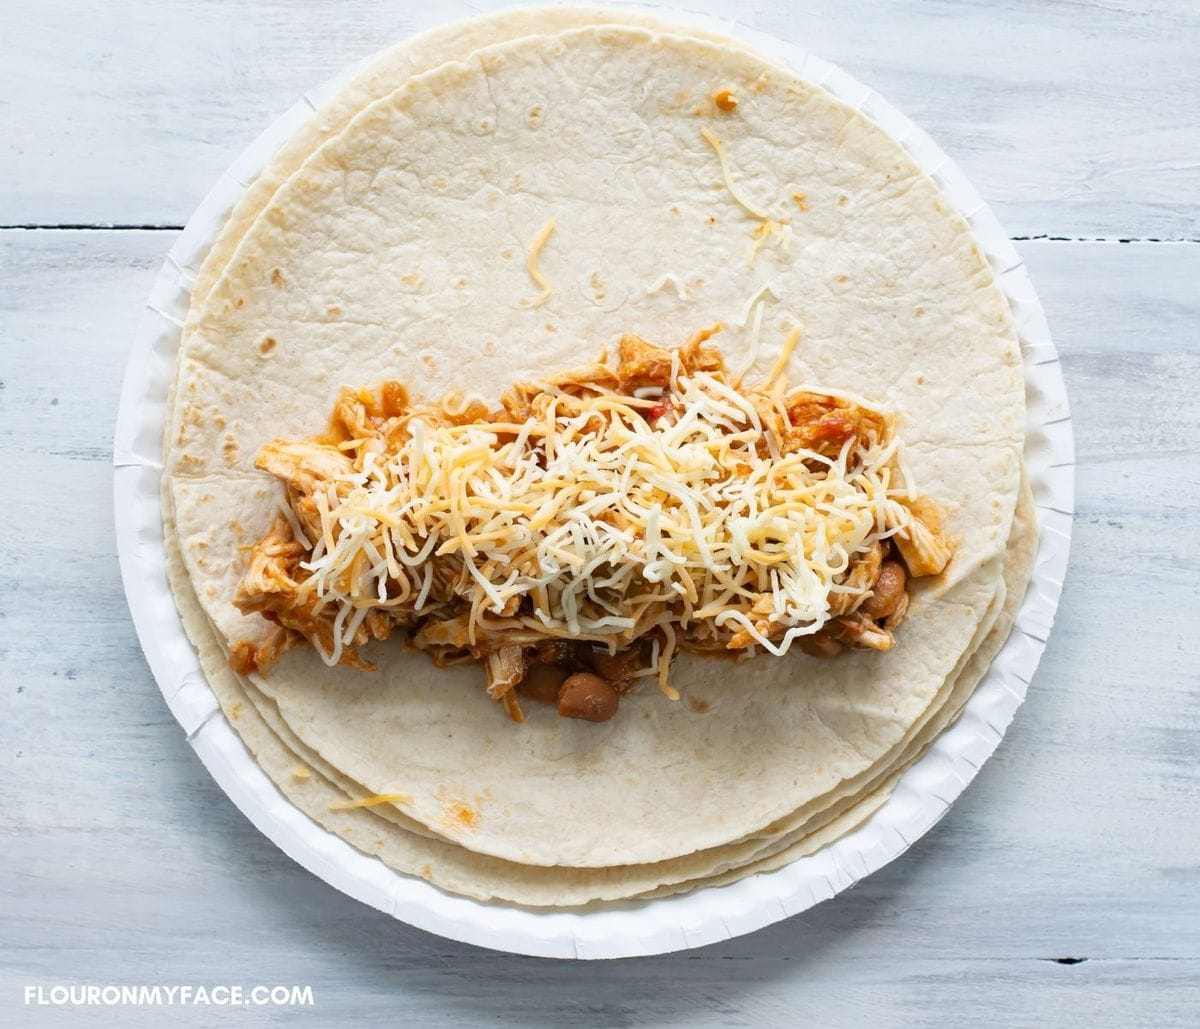 Showing how to fill a burrito.